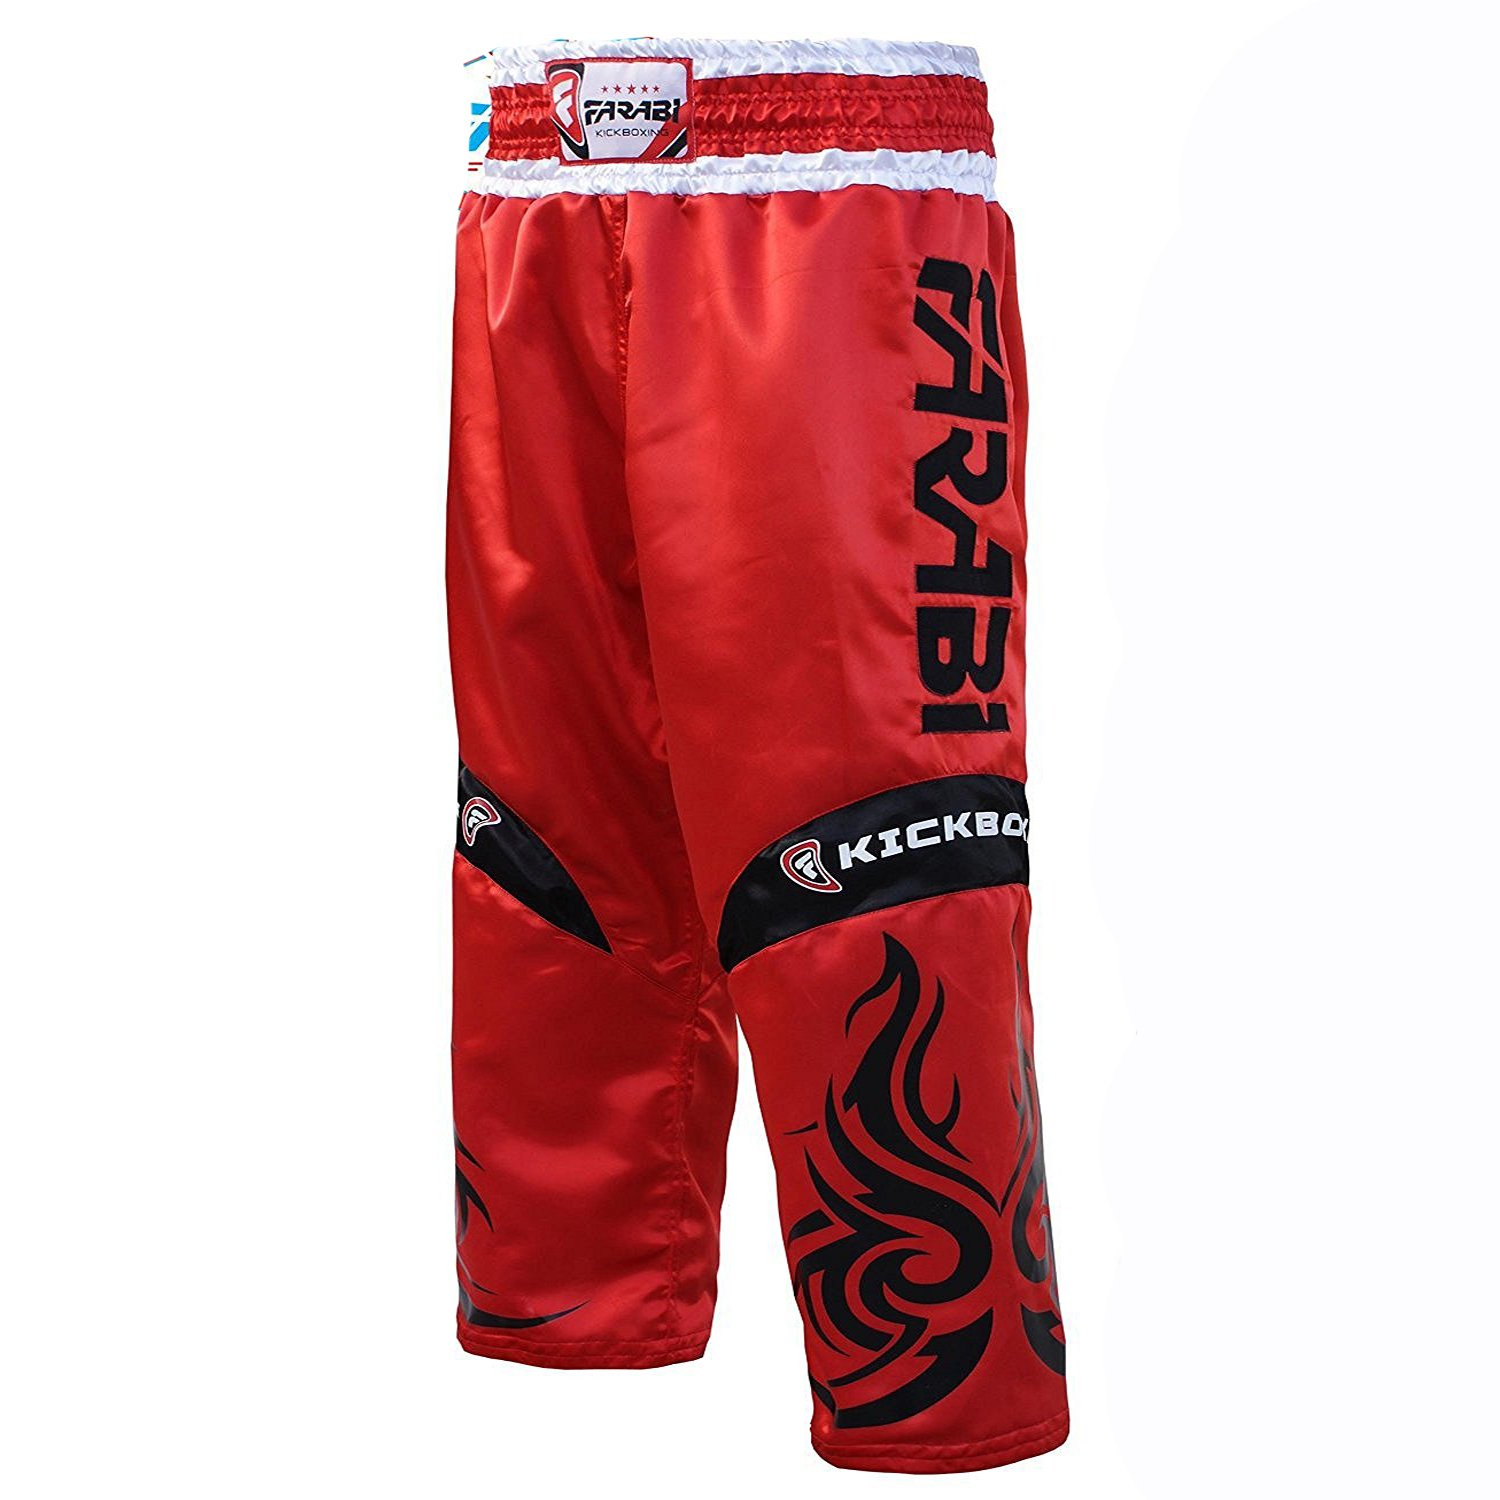 Farabi KickBoxing Trousers Pants Mix martial arts Full contact Blue Red Black Adult & kids sizes Farabi Sports